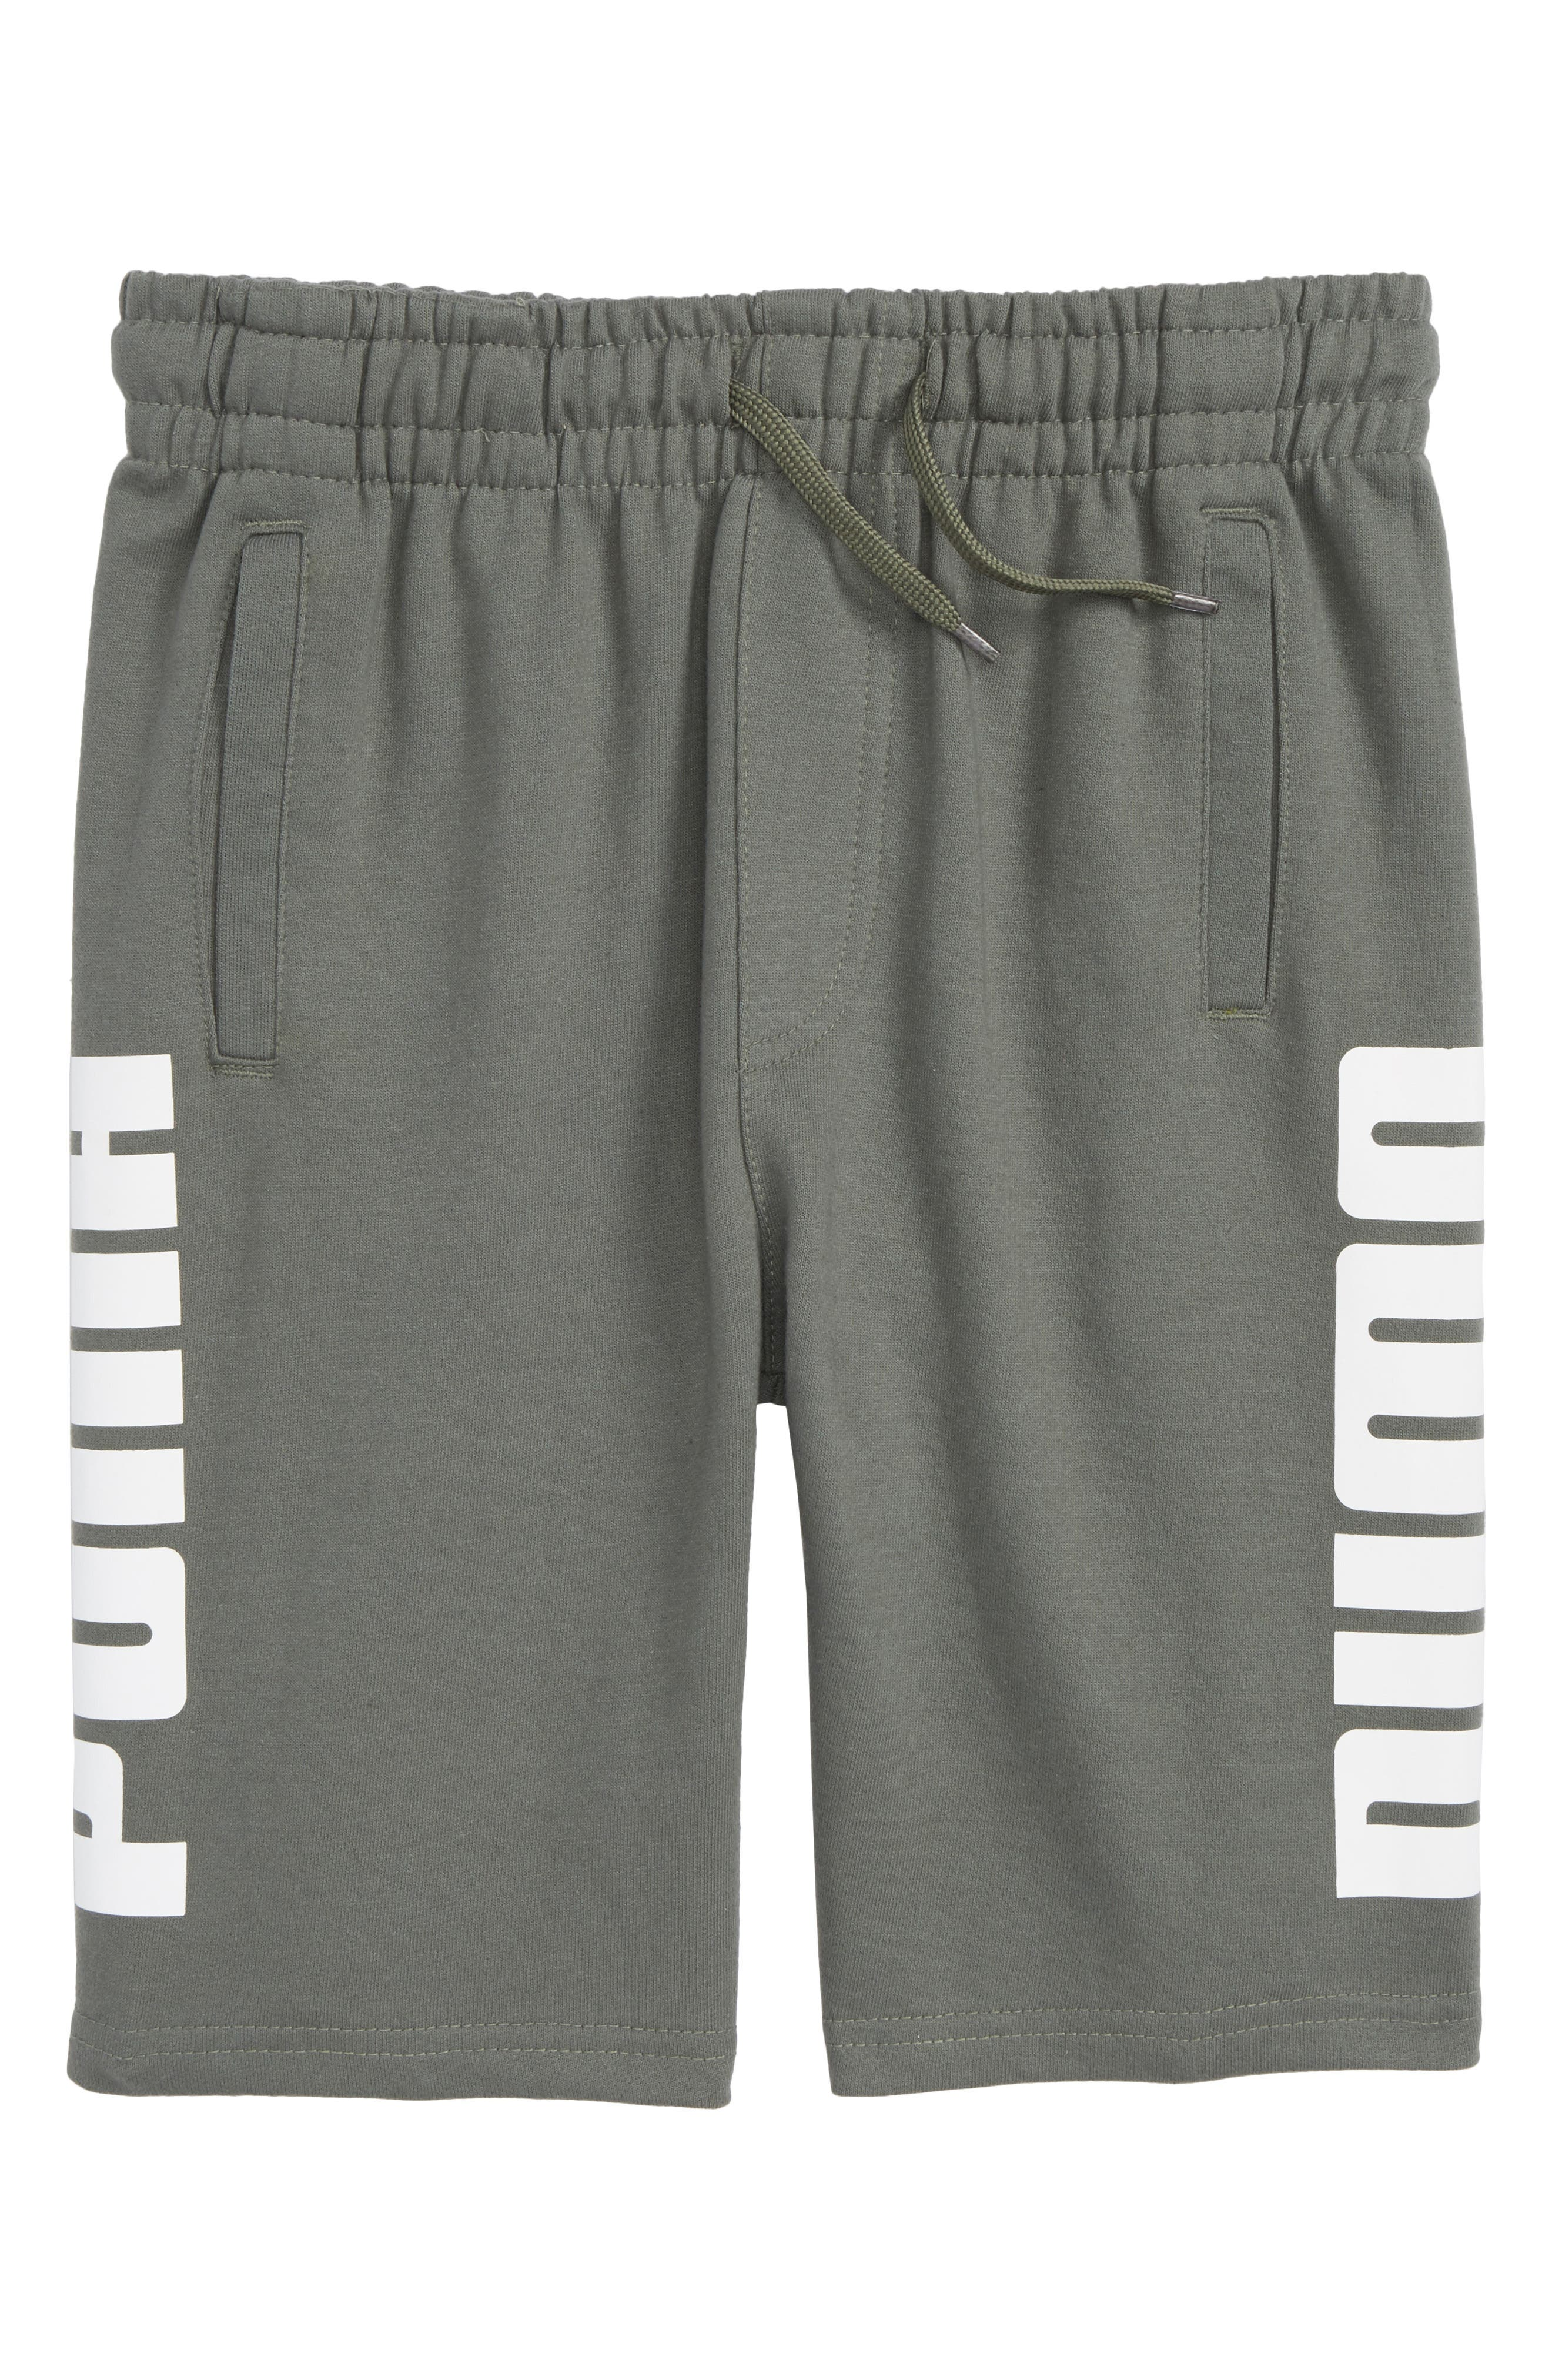 Rebel Knit Shorts,                         Main,                         color, Castor Grey